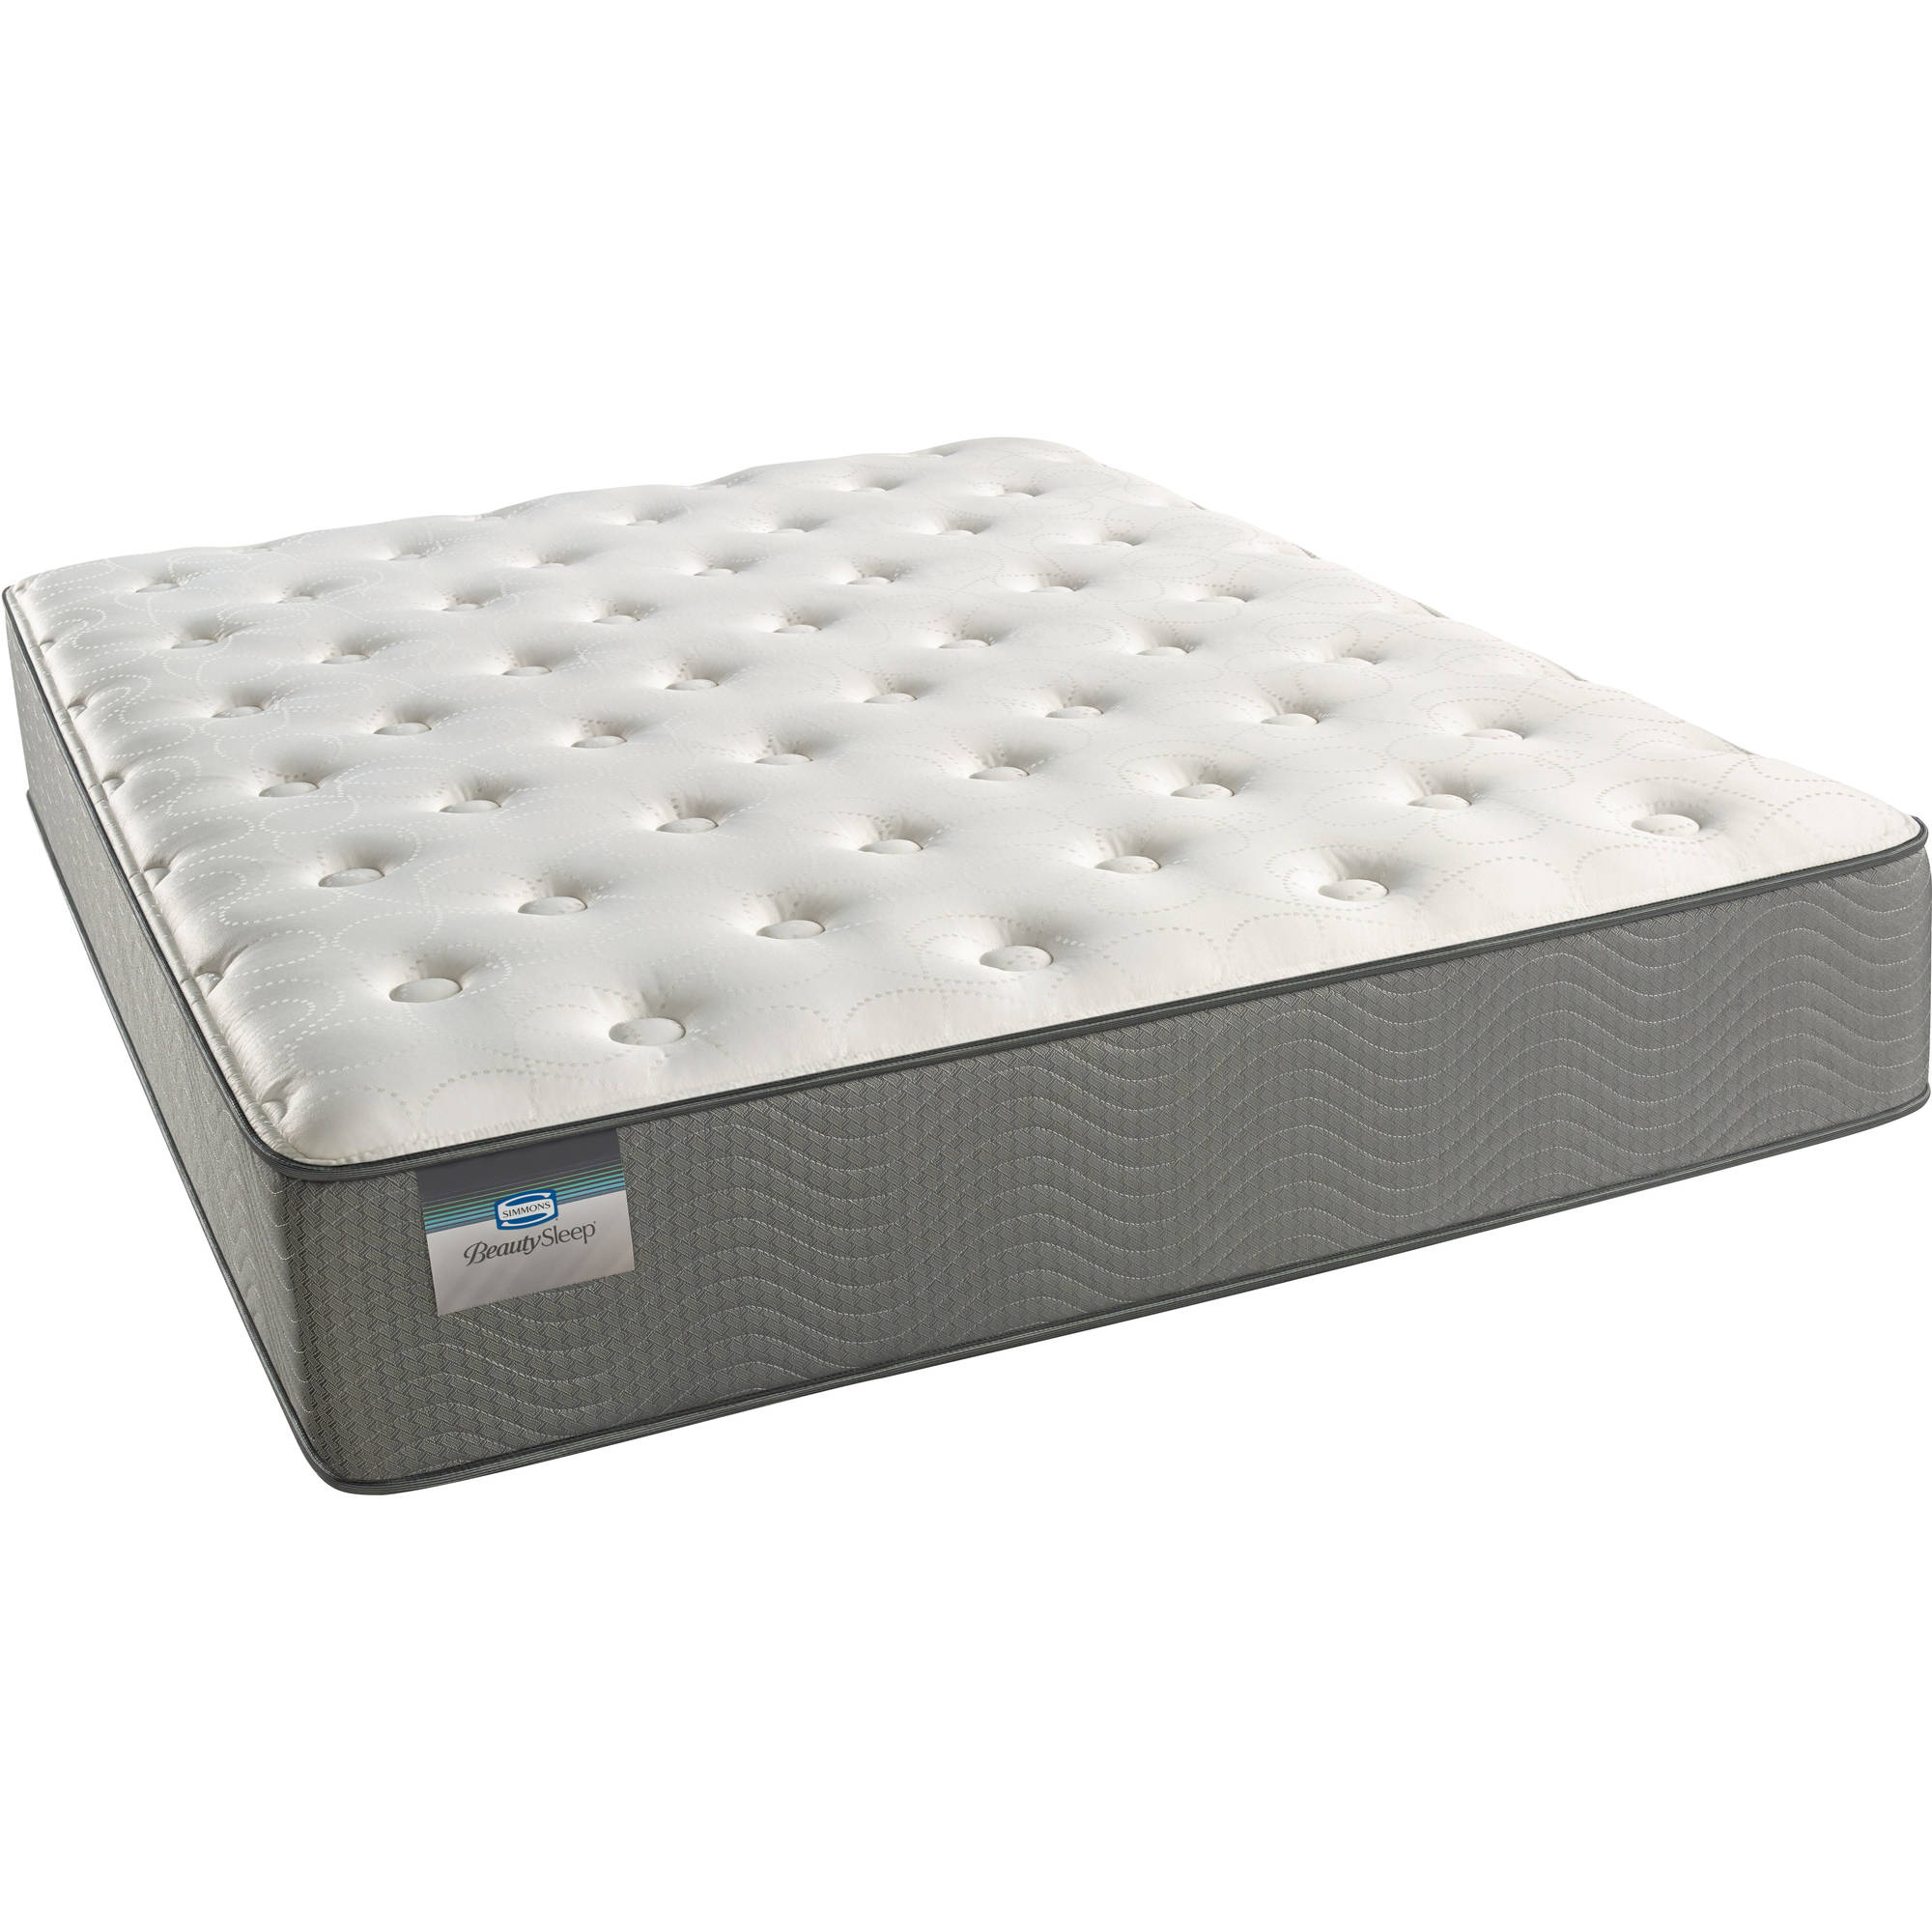 "Simmons BeautySleep Sanford 11.5"" Plush Mattress"